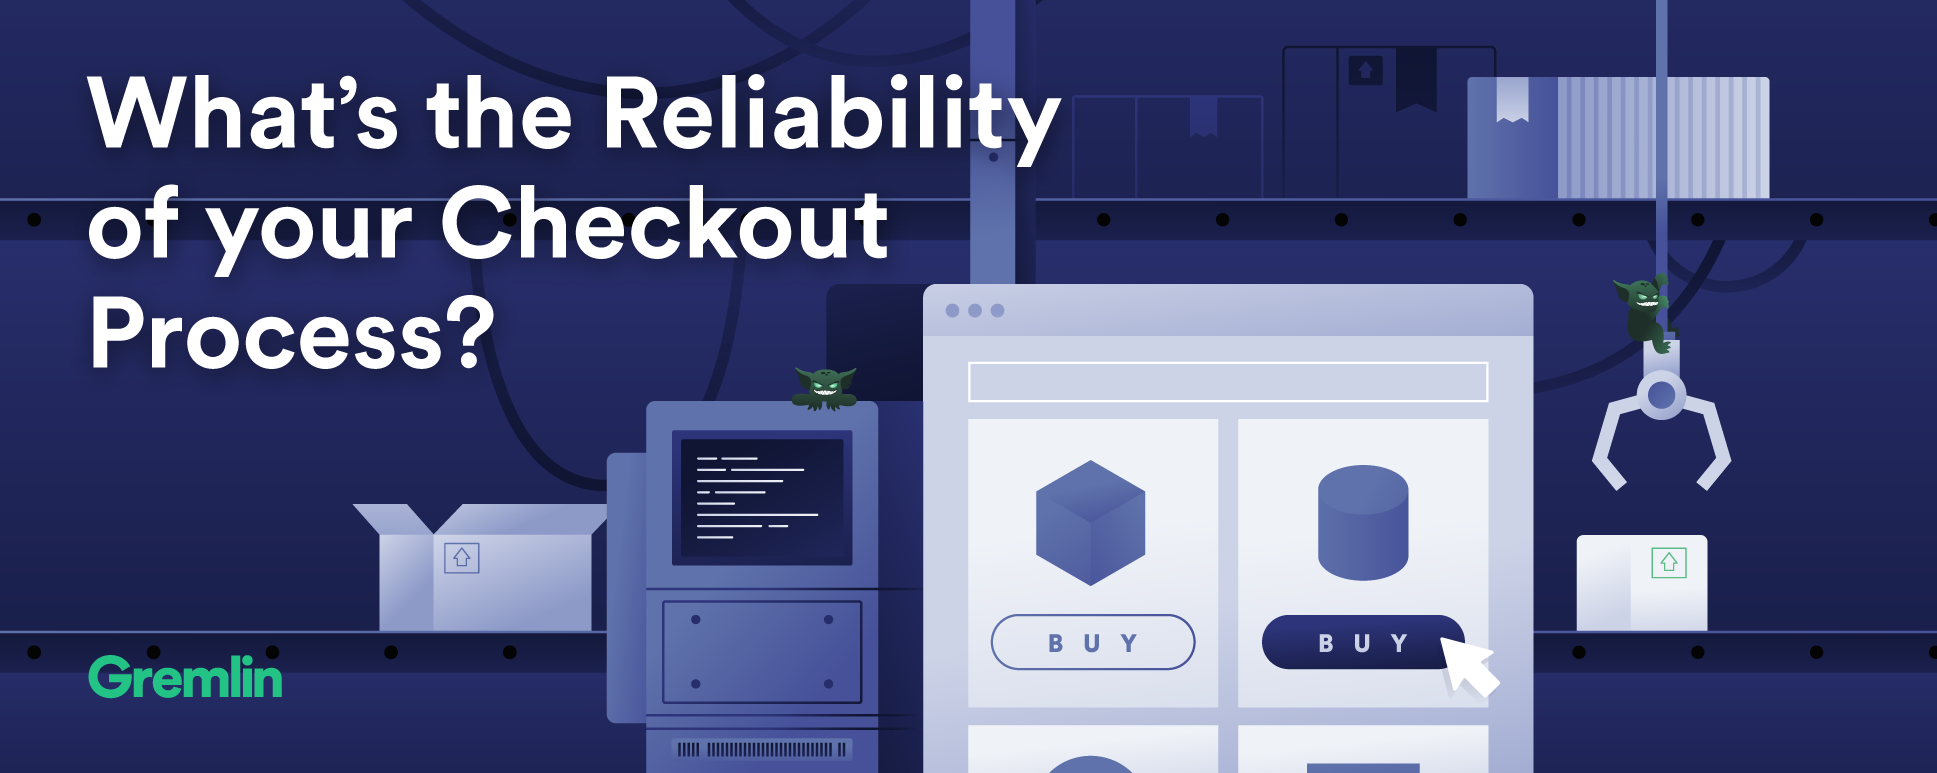 What's the reliability of your checkout process?